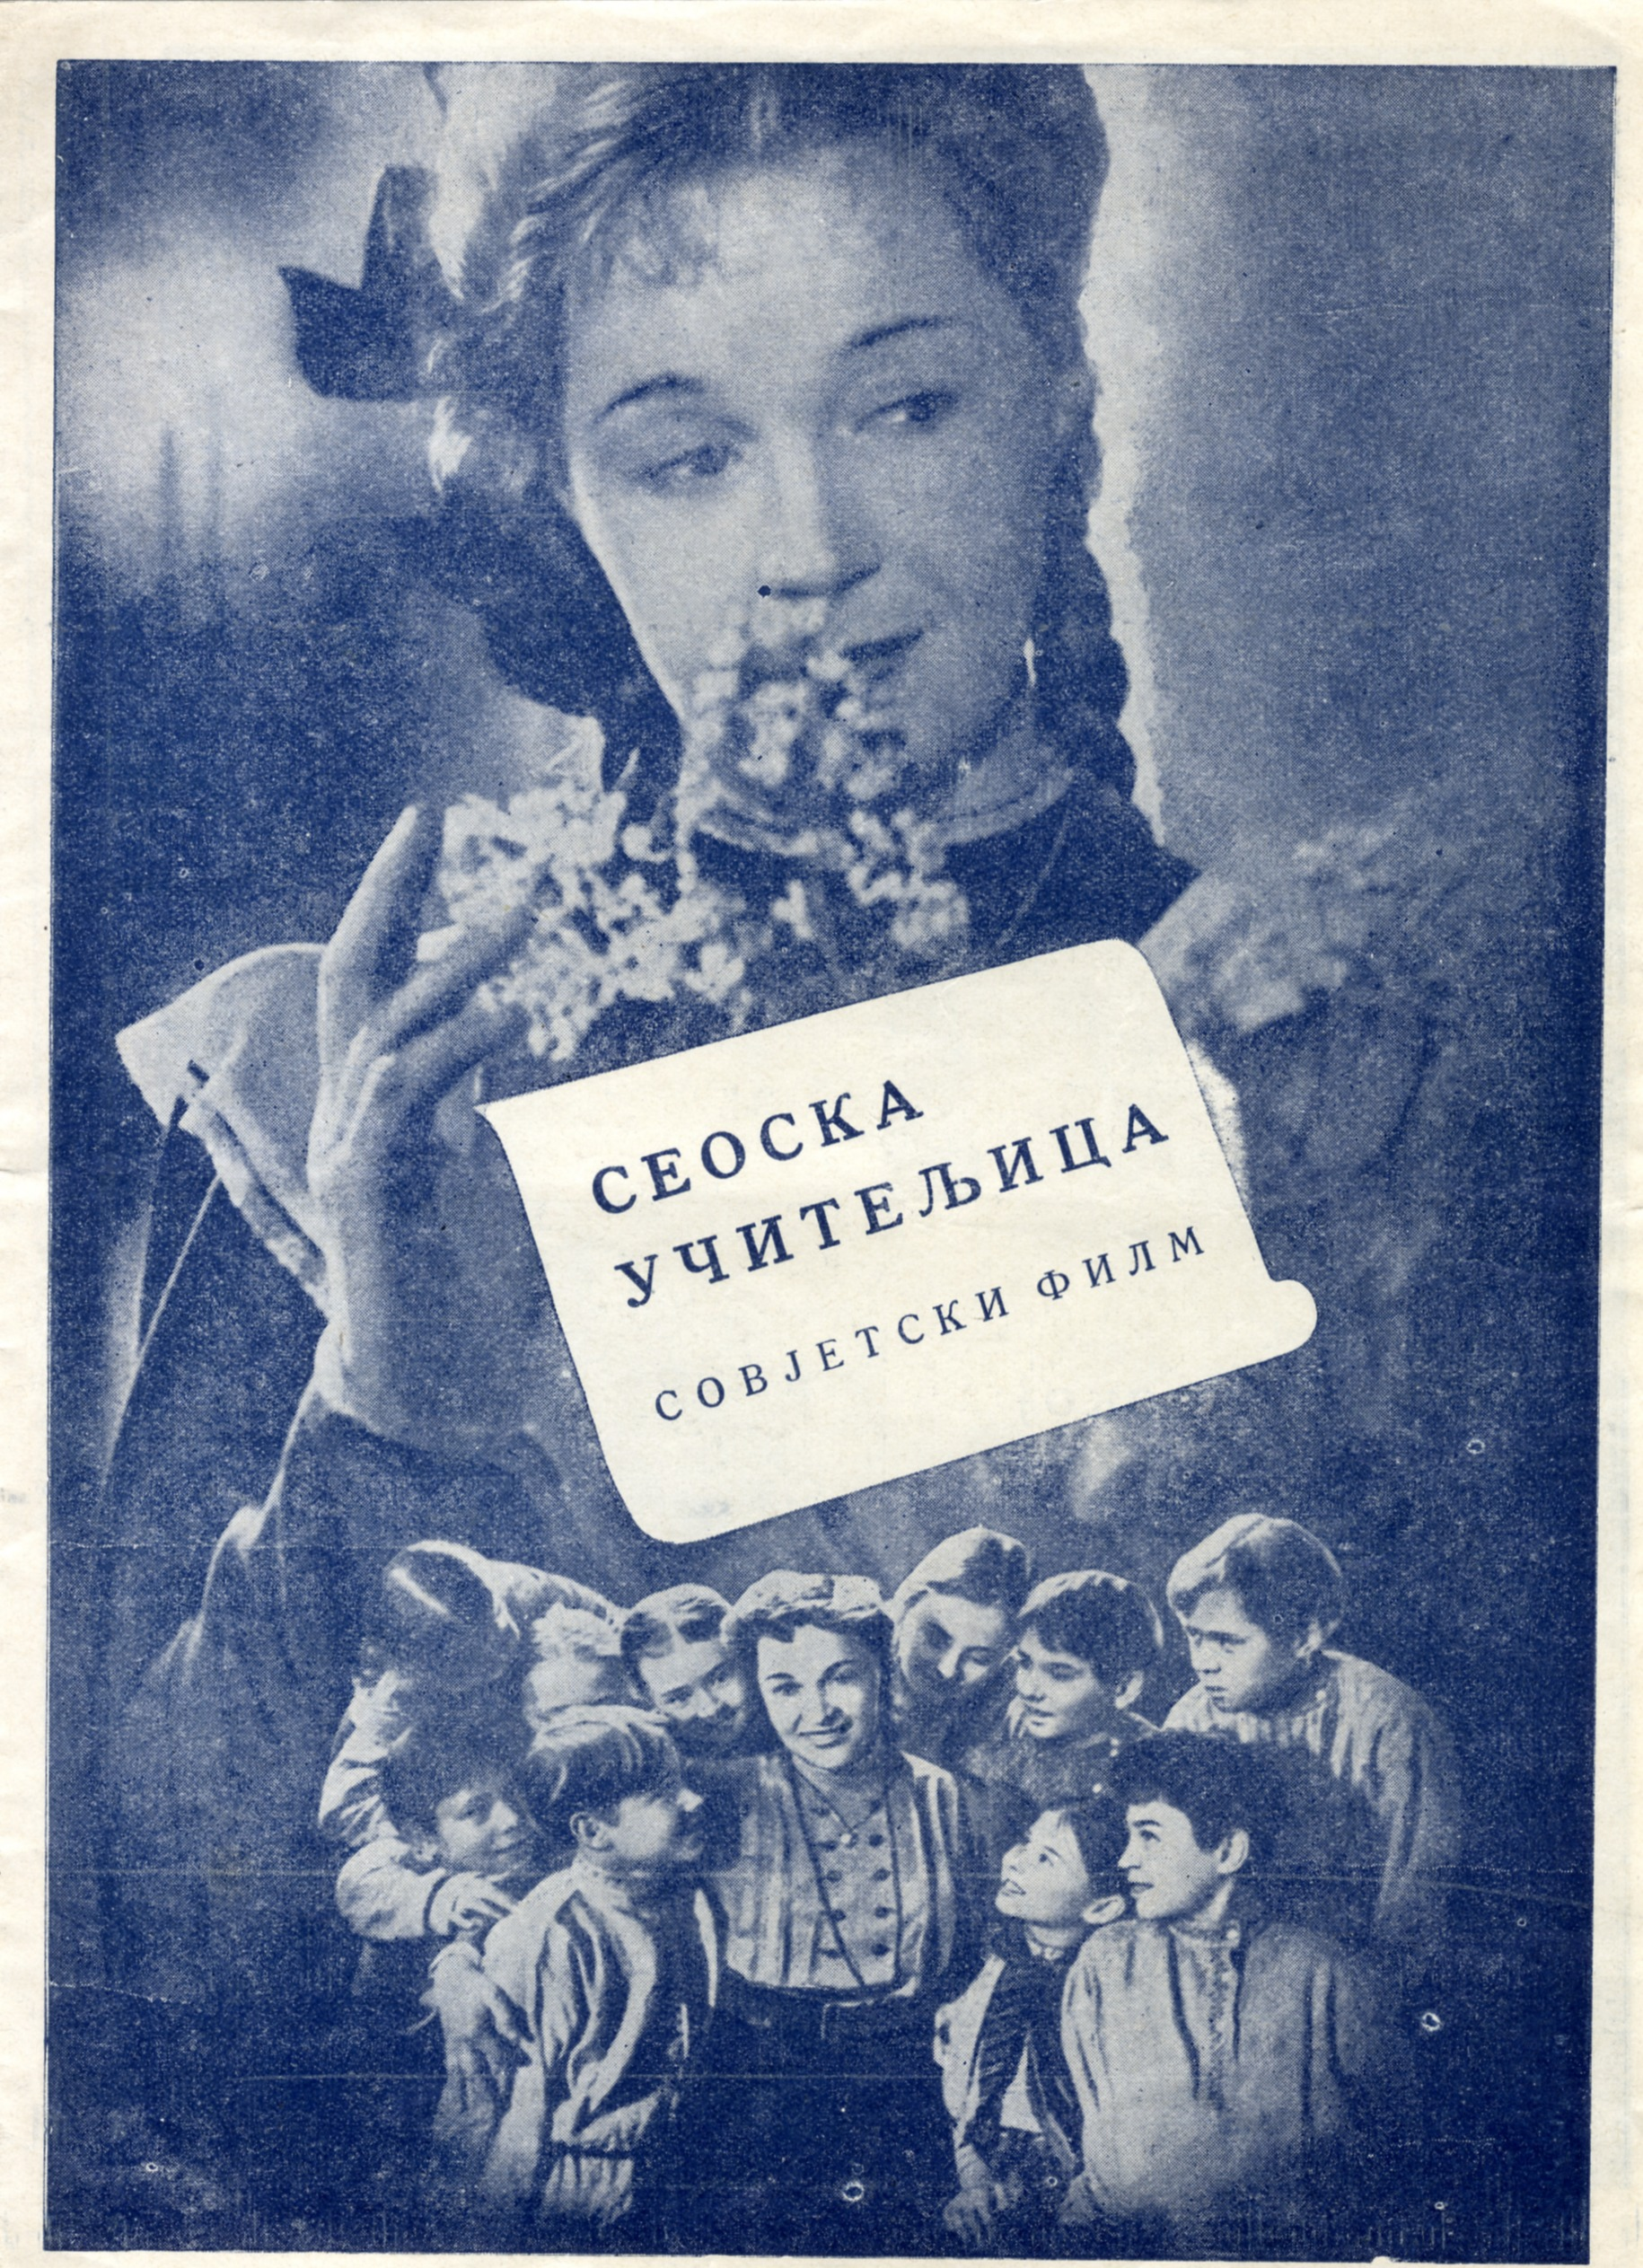 Advertisement for the feature fikm 'Selskaya uchitelnitsa', © Jugoslovenska kinoteka, Belgrade